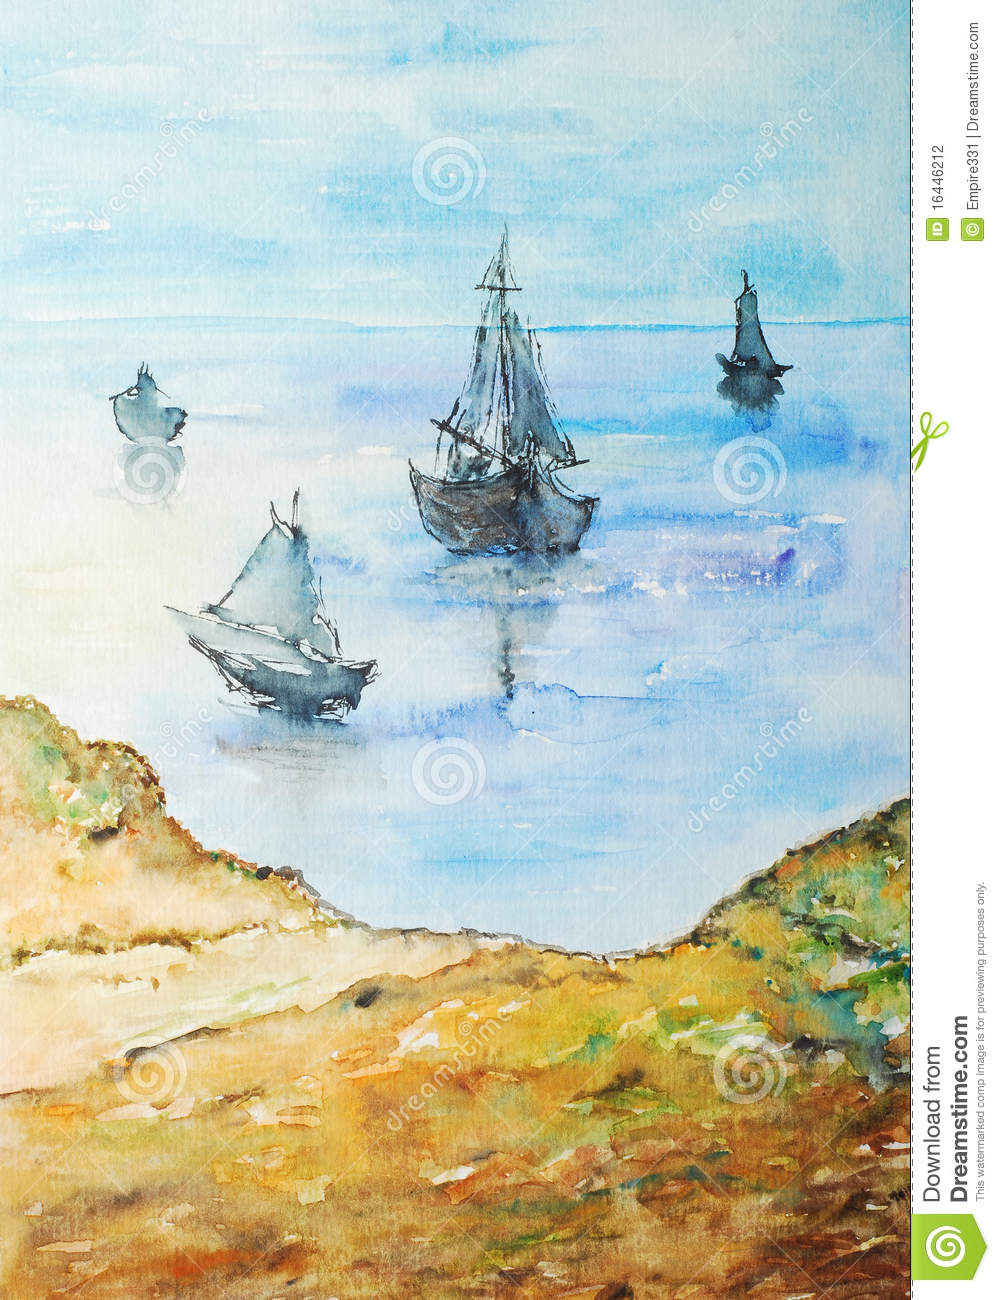 Watercolor painting, boats on the shore